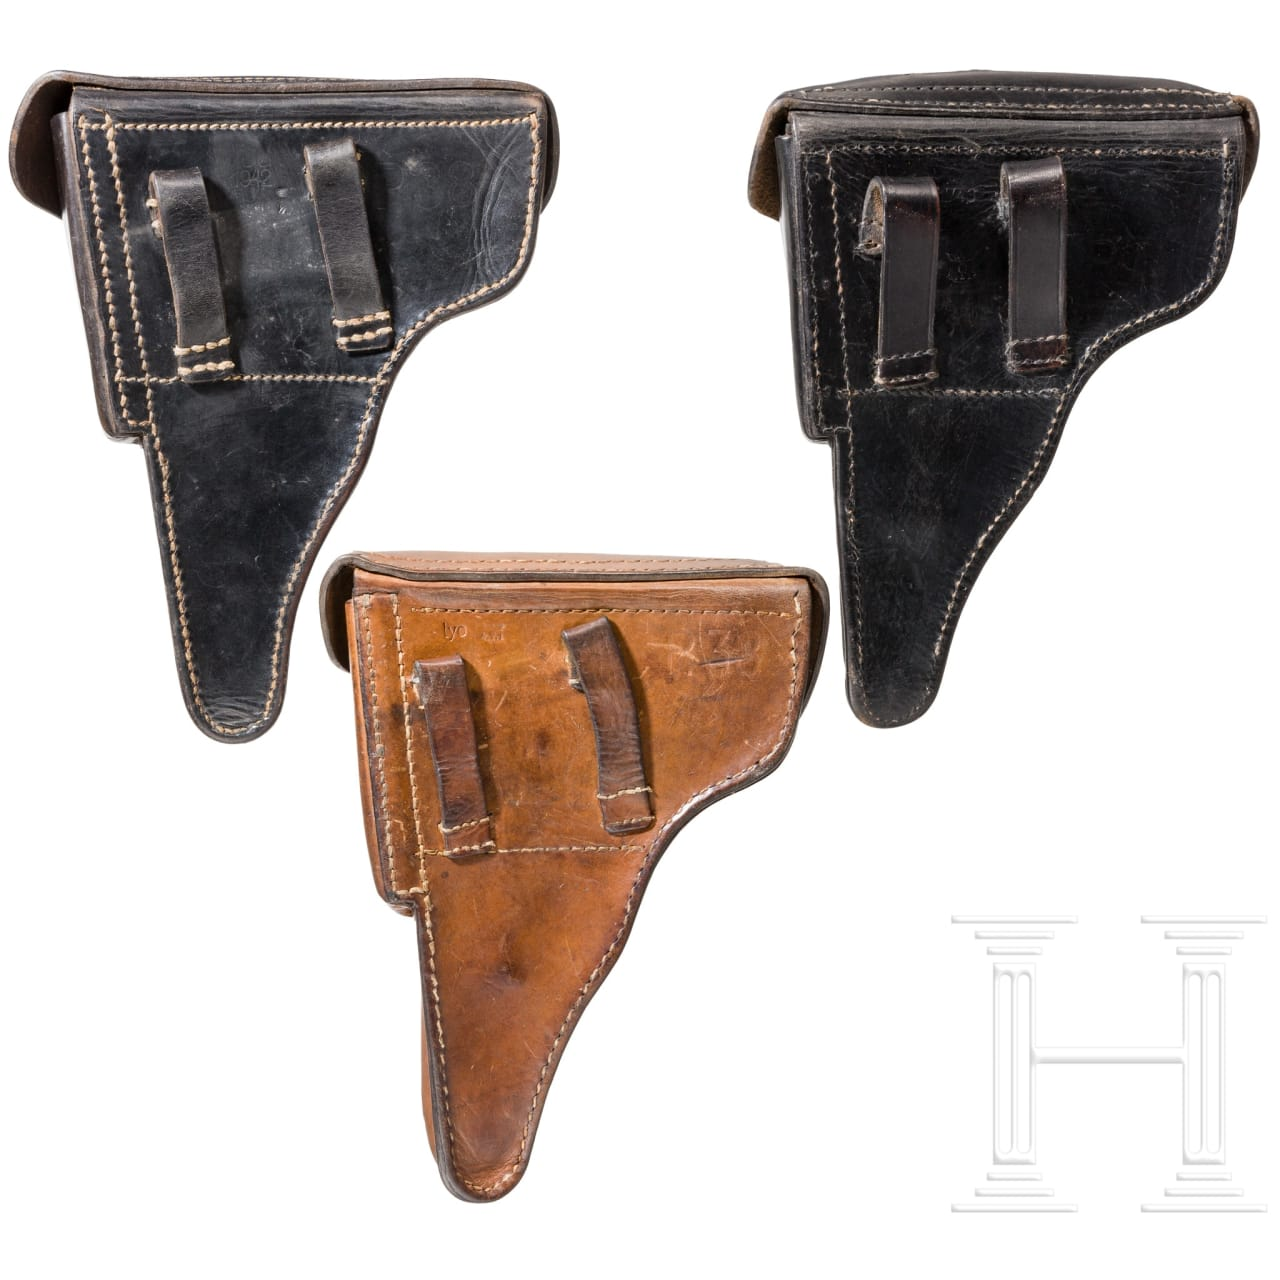 Three holsters for the P 38